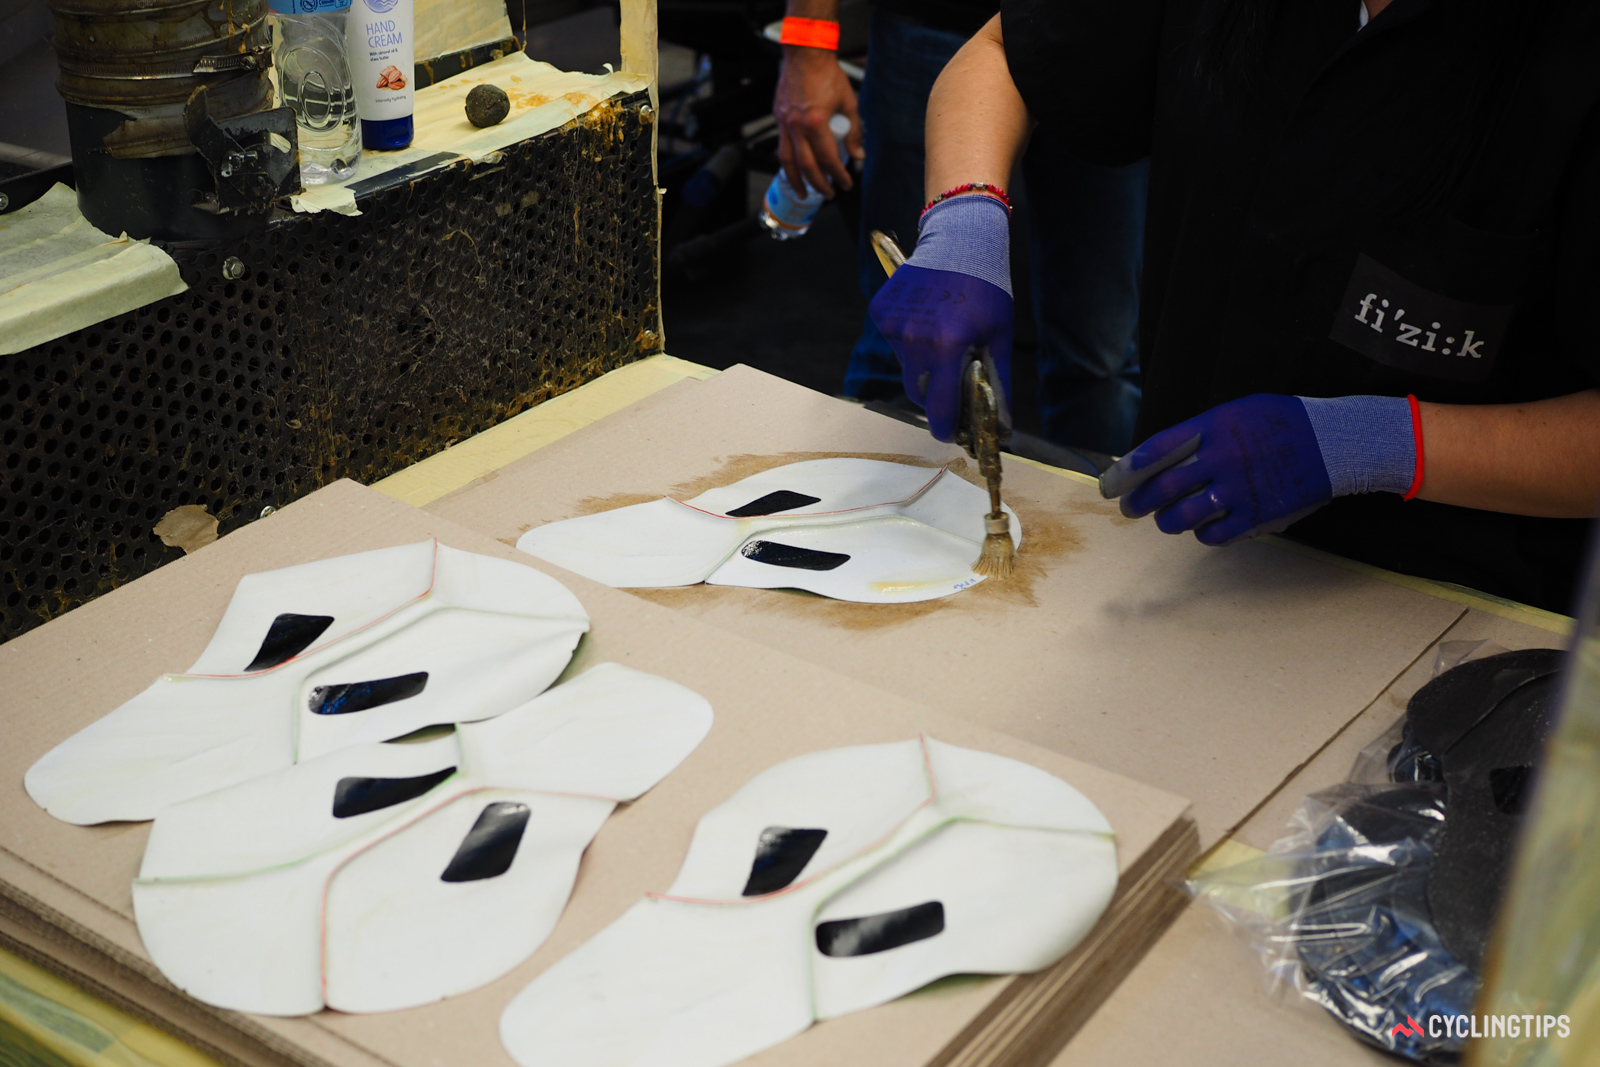 Glue is applied to the underside of the covers, too. The adhesives used are essentially contact cements, not unlike tubular glue.